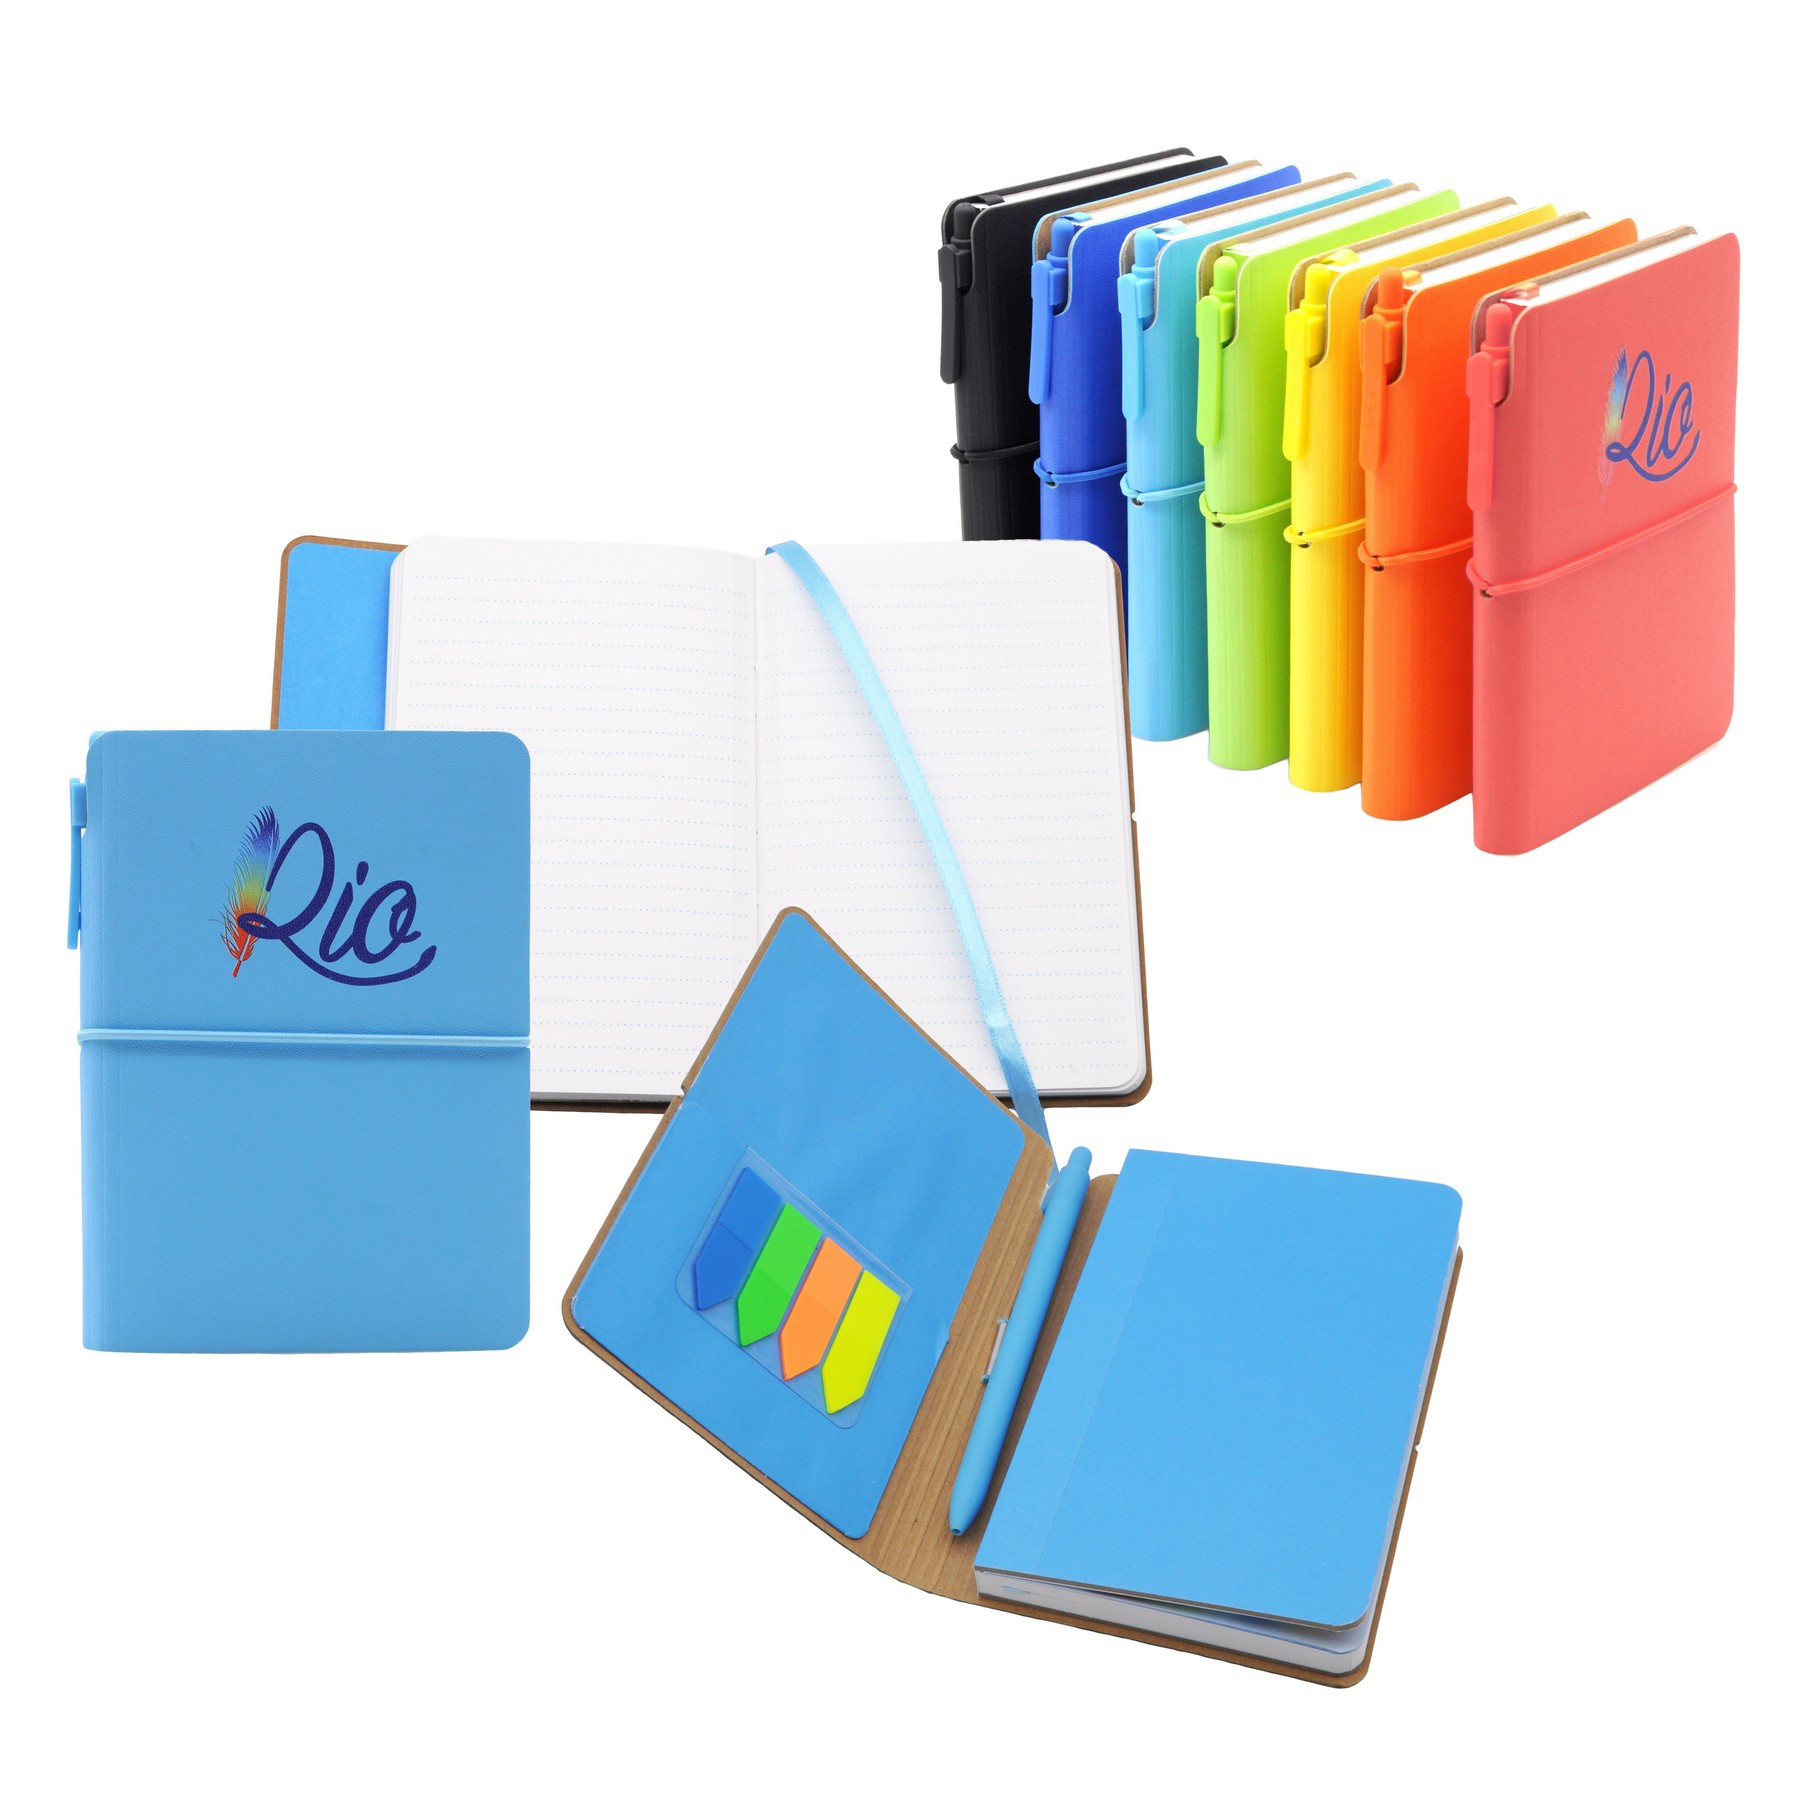 RIO Journal - Soft touch and colorful bookbound journal set